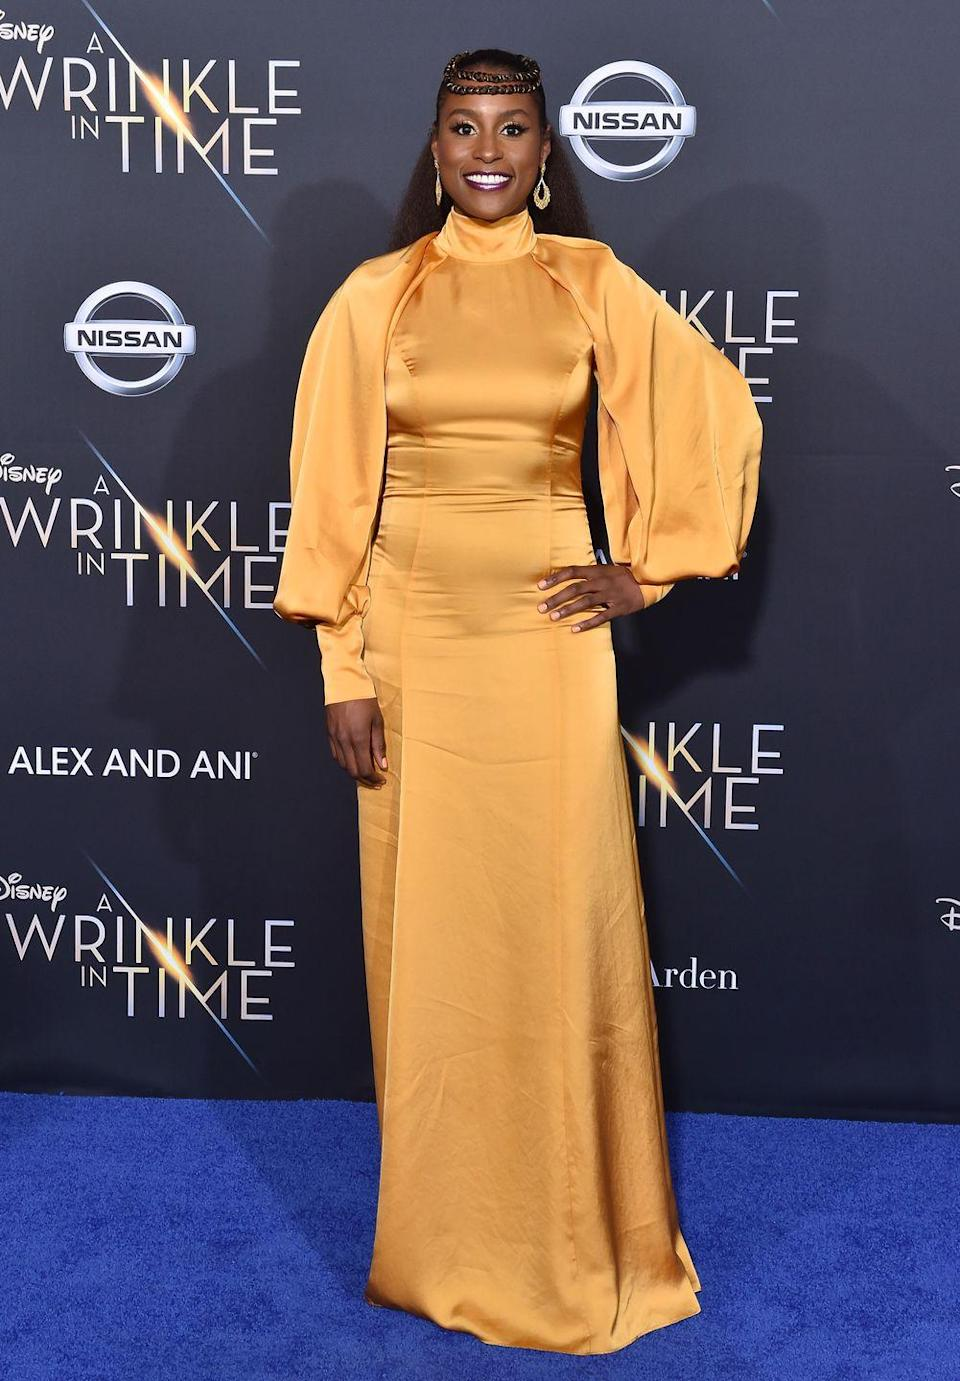 <p>Hey Queen: Turn your hair into a literal crown, singer <strong>Issa Rae</strong> style! Braid two sections of the top of hair, then wrap them around your head and pin in the shape of a crown, leaving the bottom strands flowing. </p>